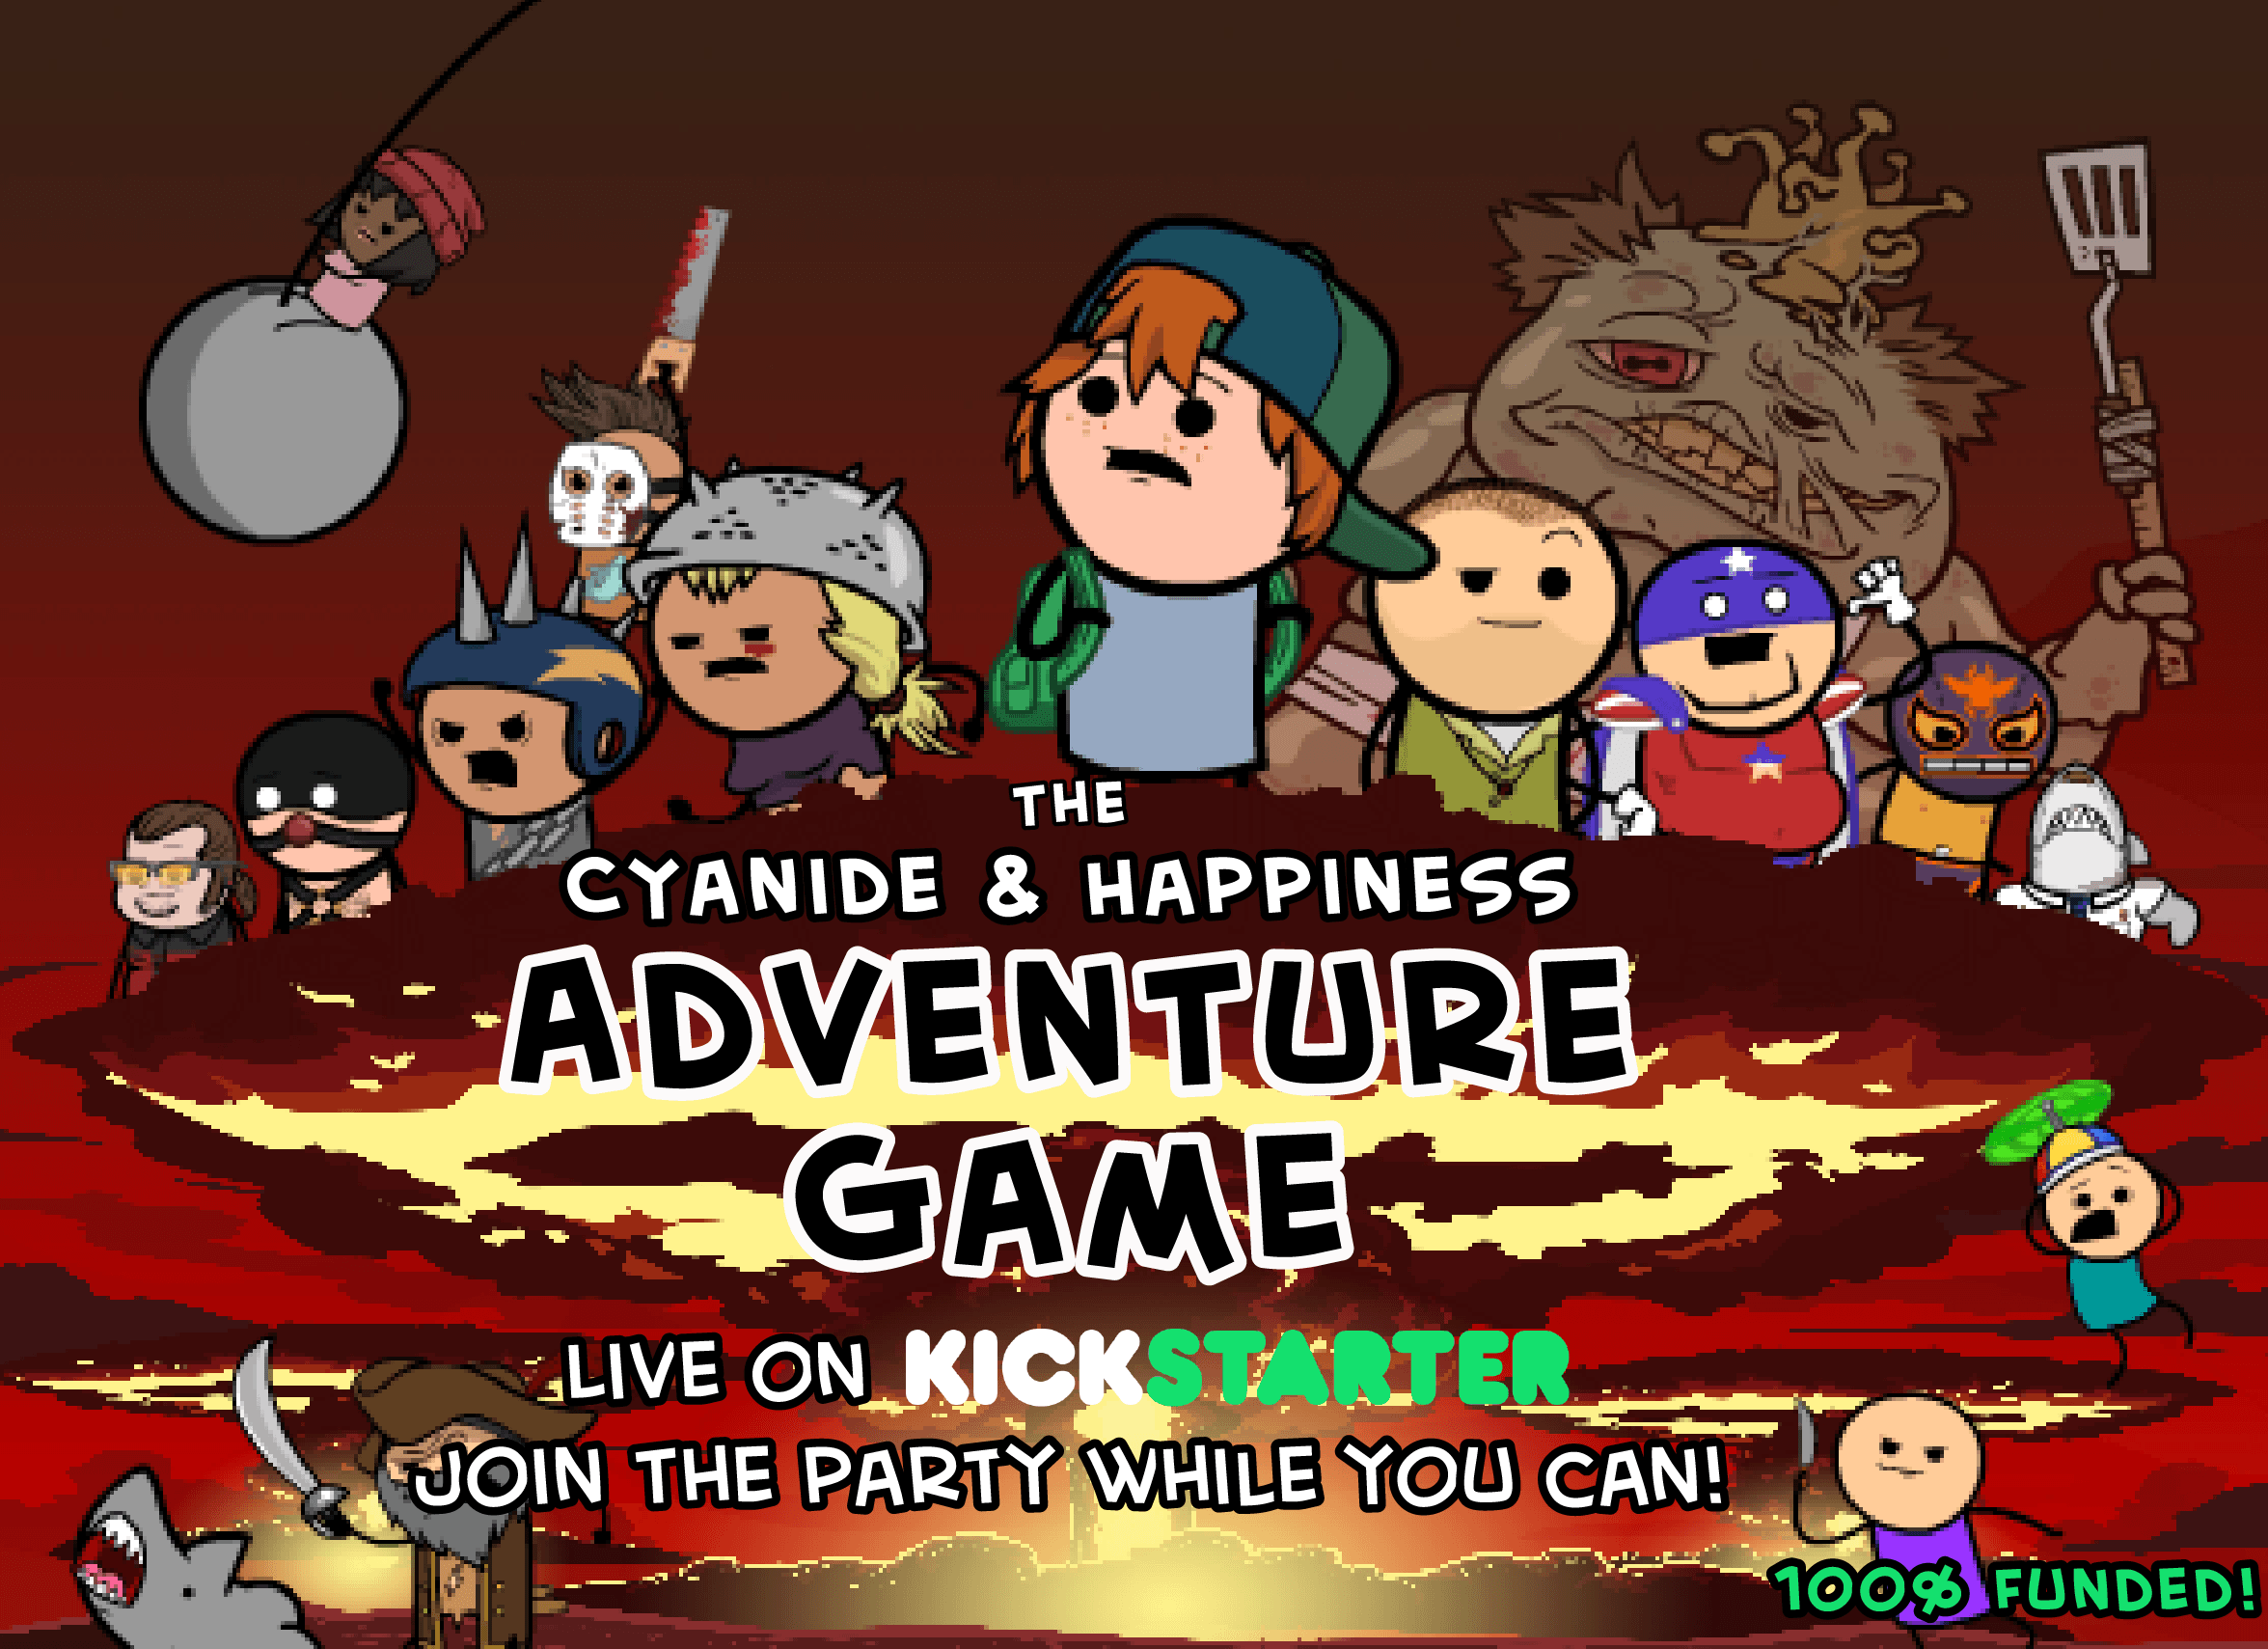 The Cyanide & Happiness Adventure Game!